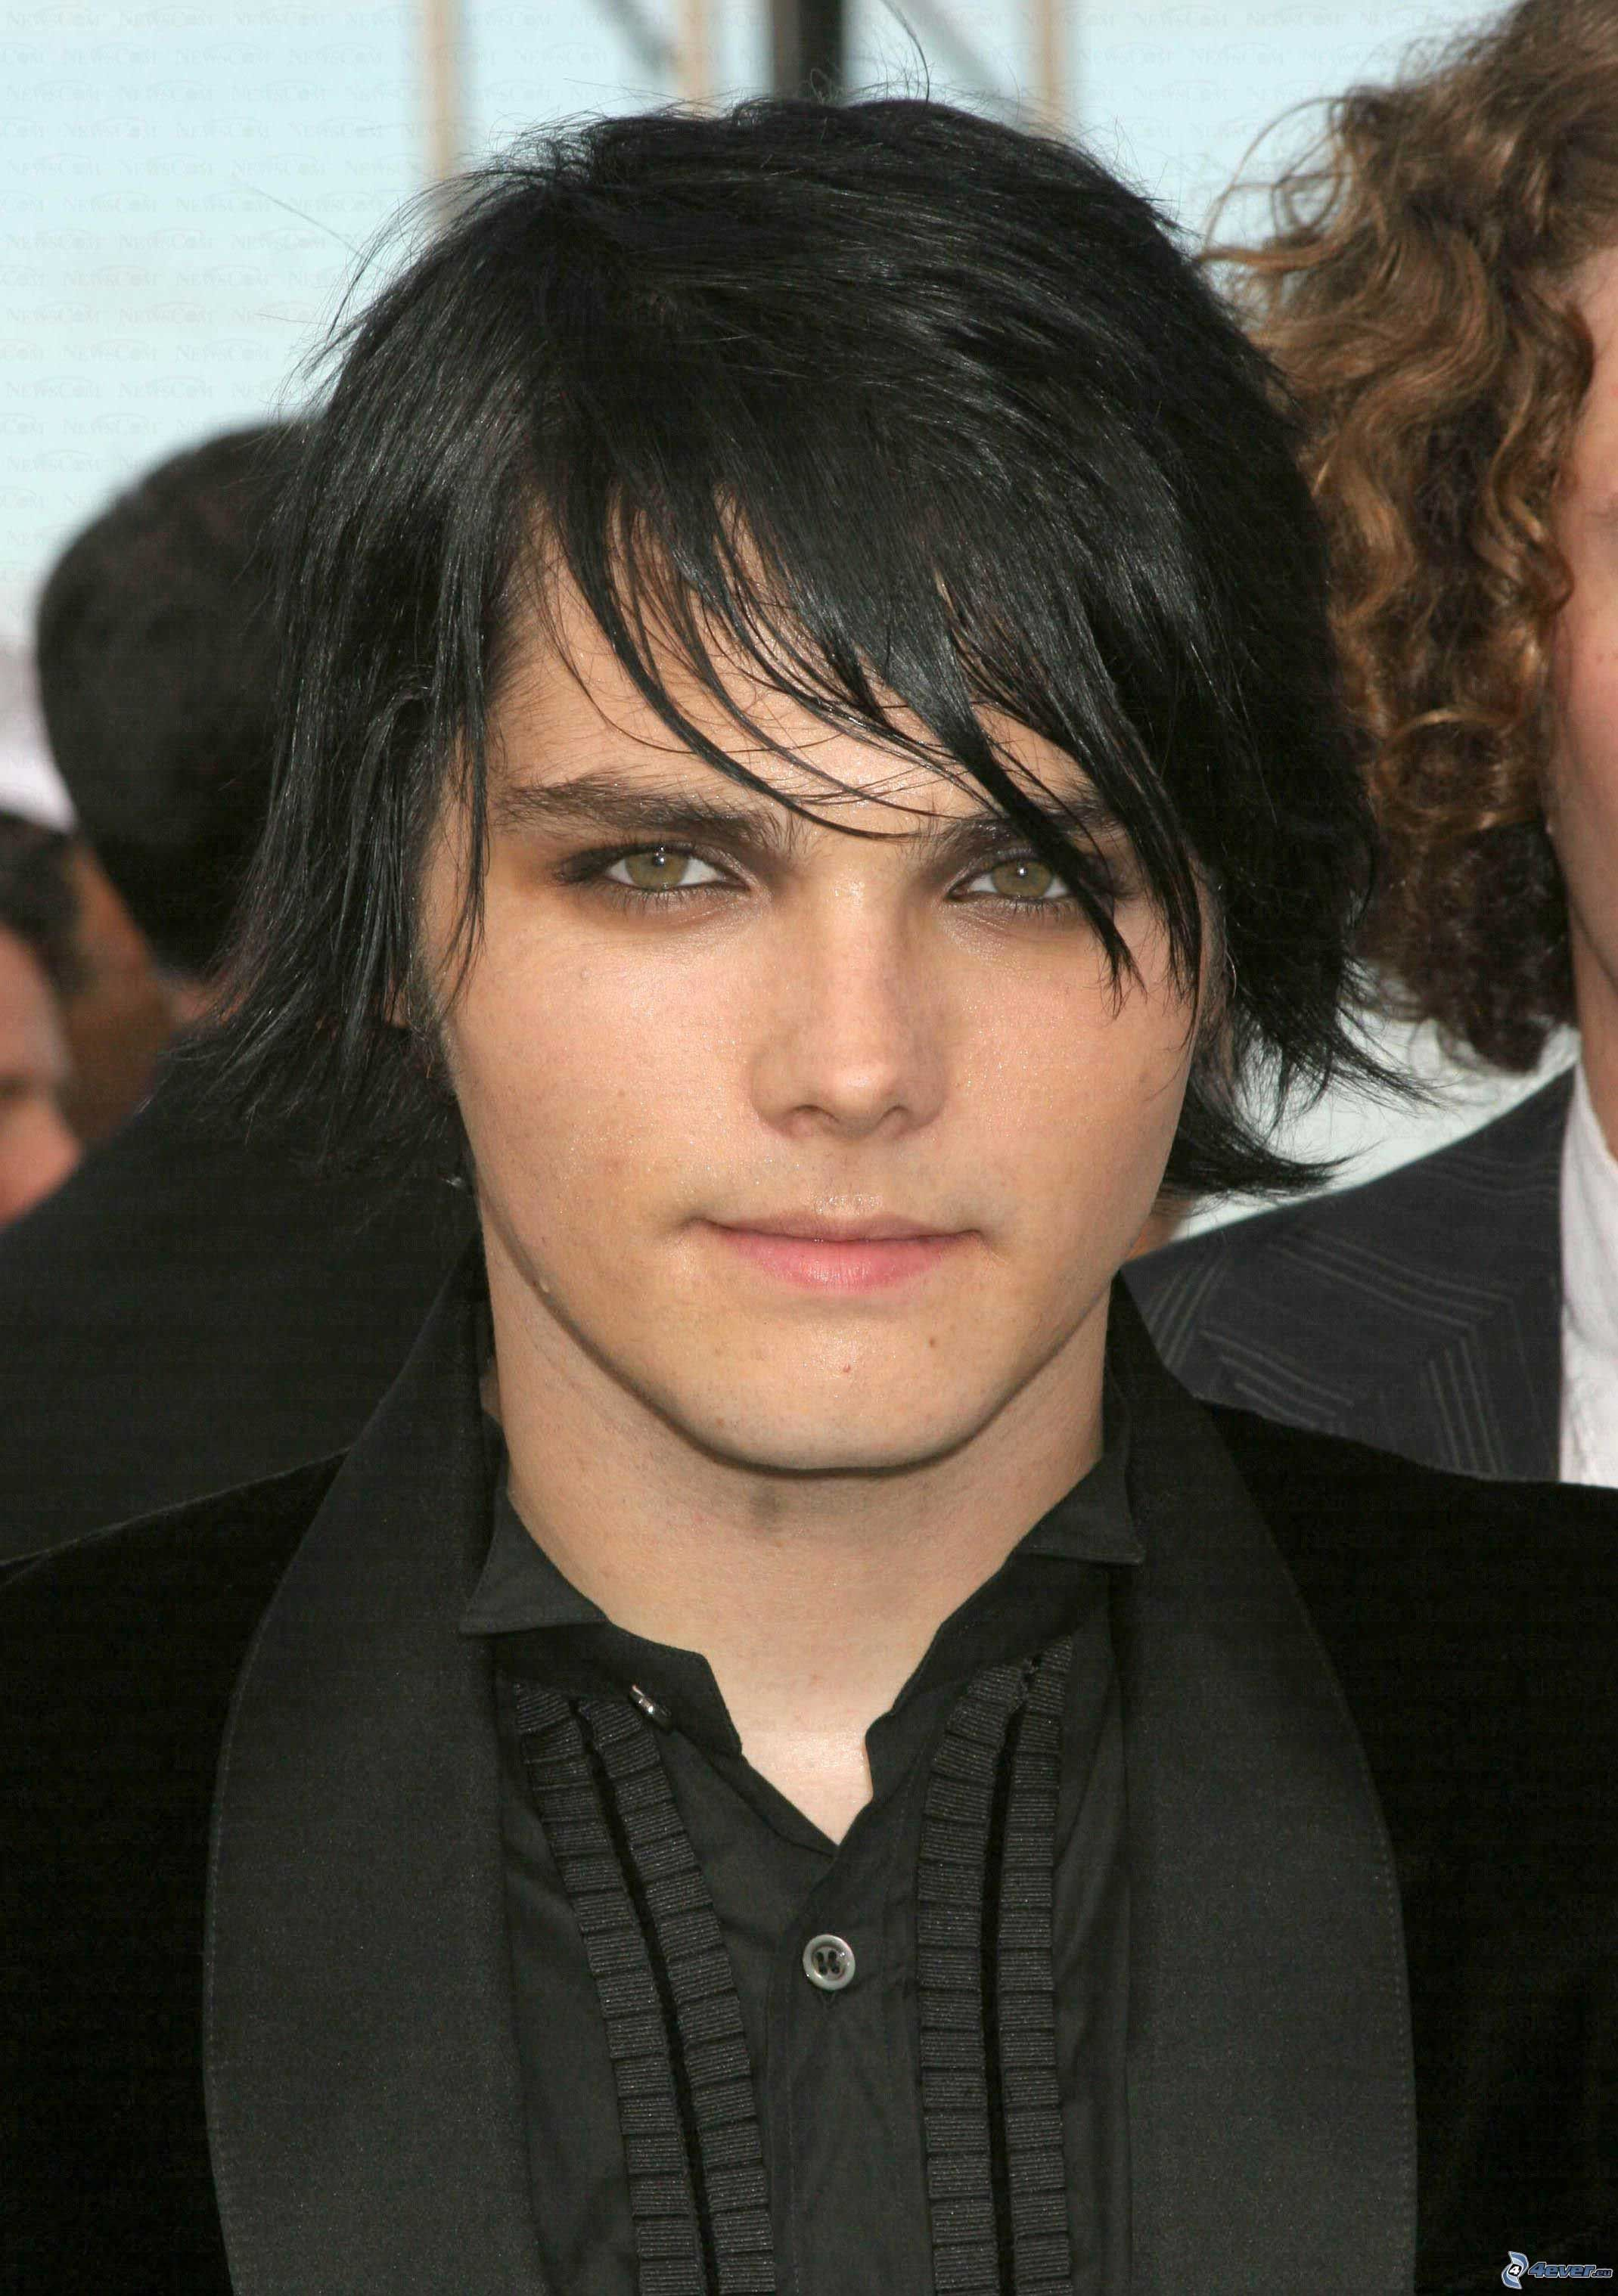 Gerard Way Gerard Way wallpaper HD Celebrities HD Wallpapers Pinterest